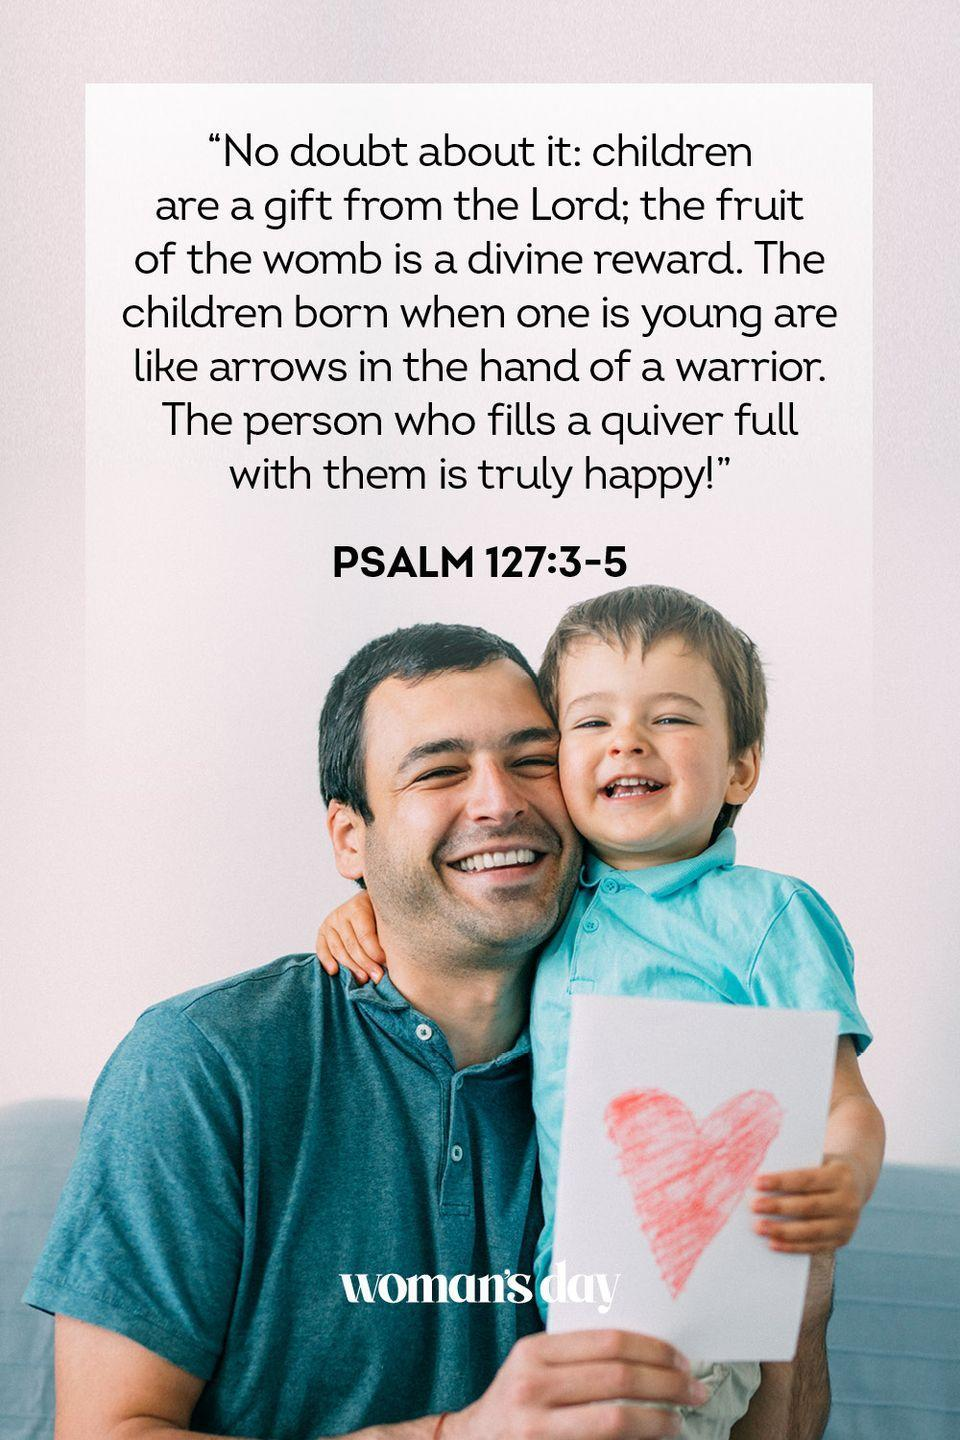 """<p>""""No doubt about it: children are a gift from the Lord; the fruit of the womb is a divine reward. The children born when one is young are like arrows in the hand of a warrior. The person who fills a quiver full with them is truly happy!""""</p><p><strong>The Good News:</strong> Don't have time to get your dad a gift for <a href=""""https://www.womansday.com/life/g32672763/funny-fathers-day-gifts/"""" rel=""""nofollow noopener"""" target=""""_blank"""" data-ylk=""""slk:Father's Day"""" class=""""link rapid-noclick-resp"""">Father's Day</a>? Send him this passage to remind him that you're his ultimate gift — or so says the Bible.</p>"""